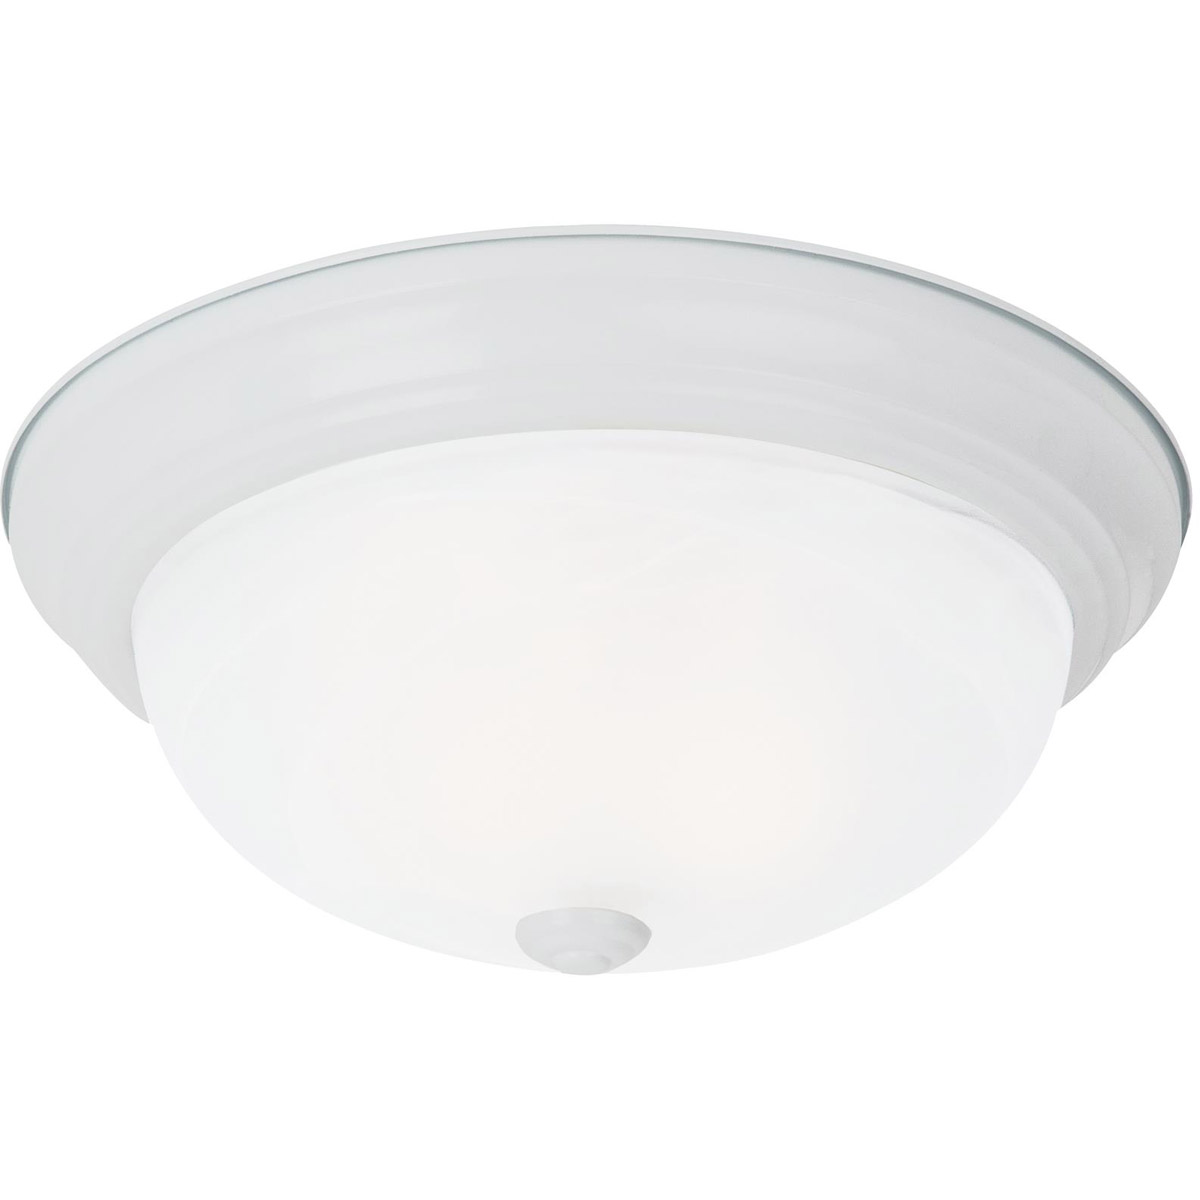 Sea Gull Lighting Windgate 2 Light Flush Mount in White 75942-15